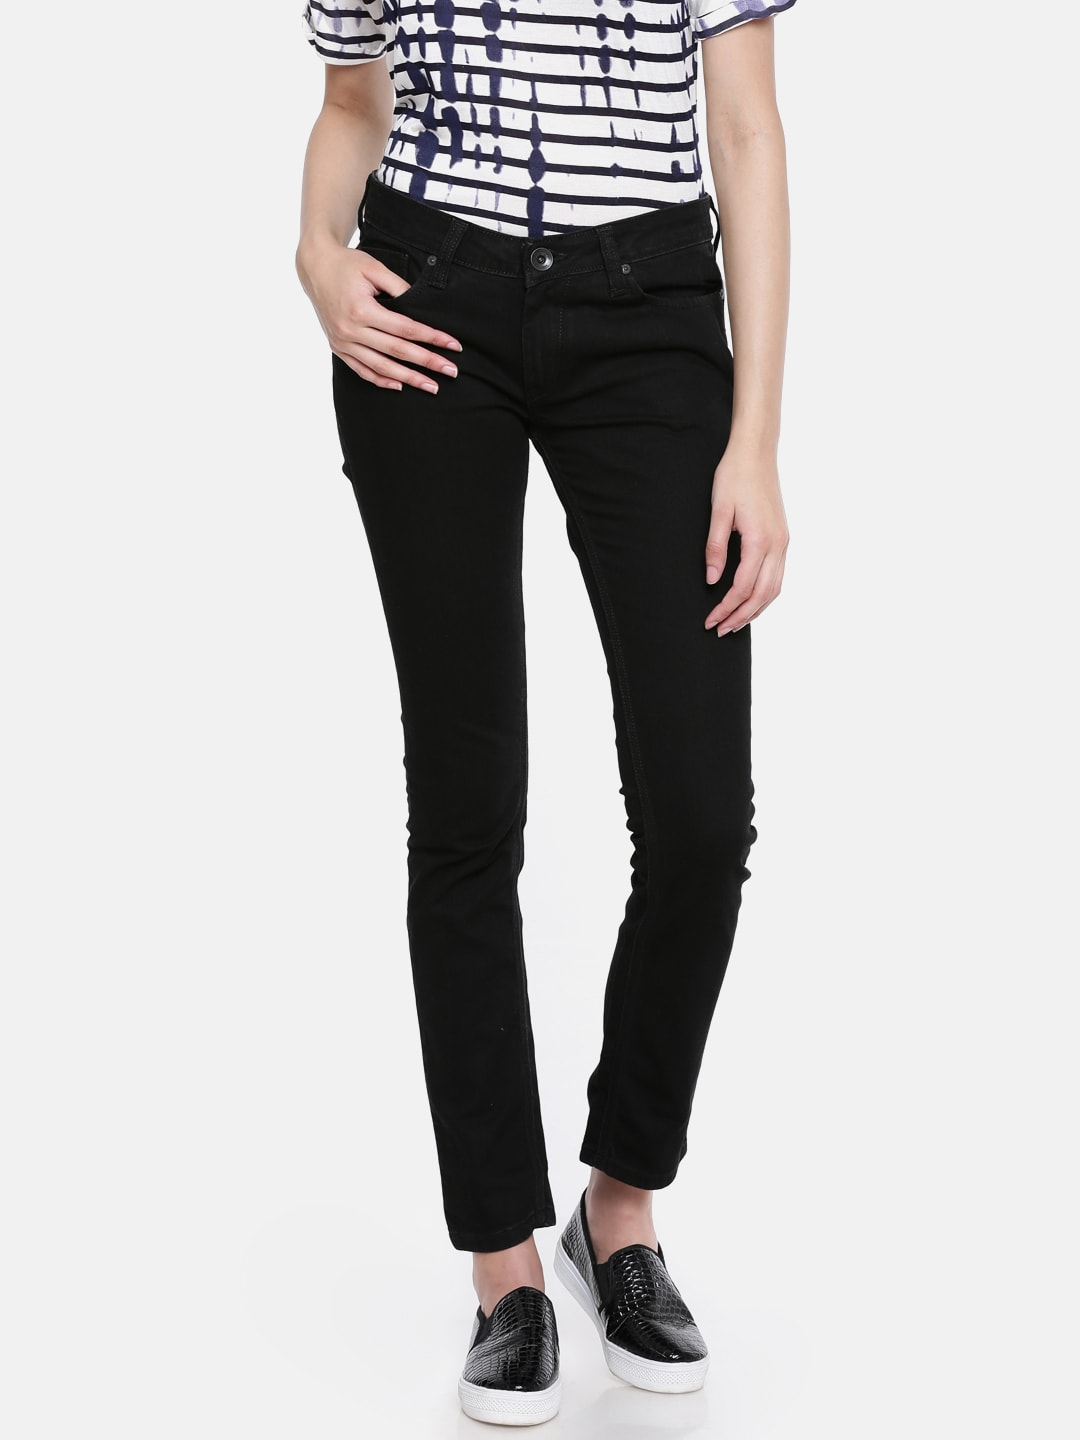 a0f4b6f9a1ab Flared Jeans - Buy Flared Jeans online in India